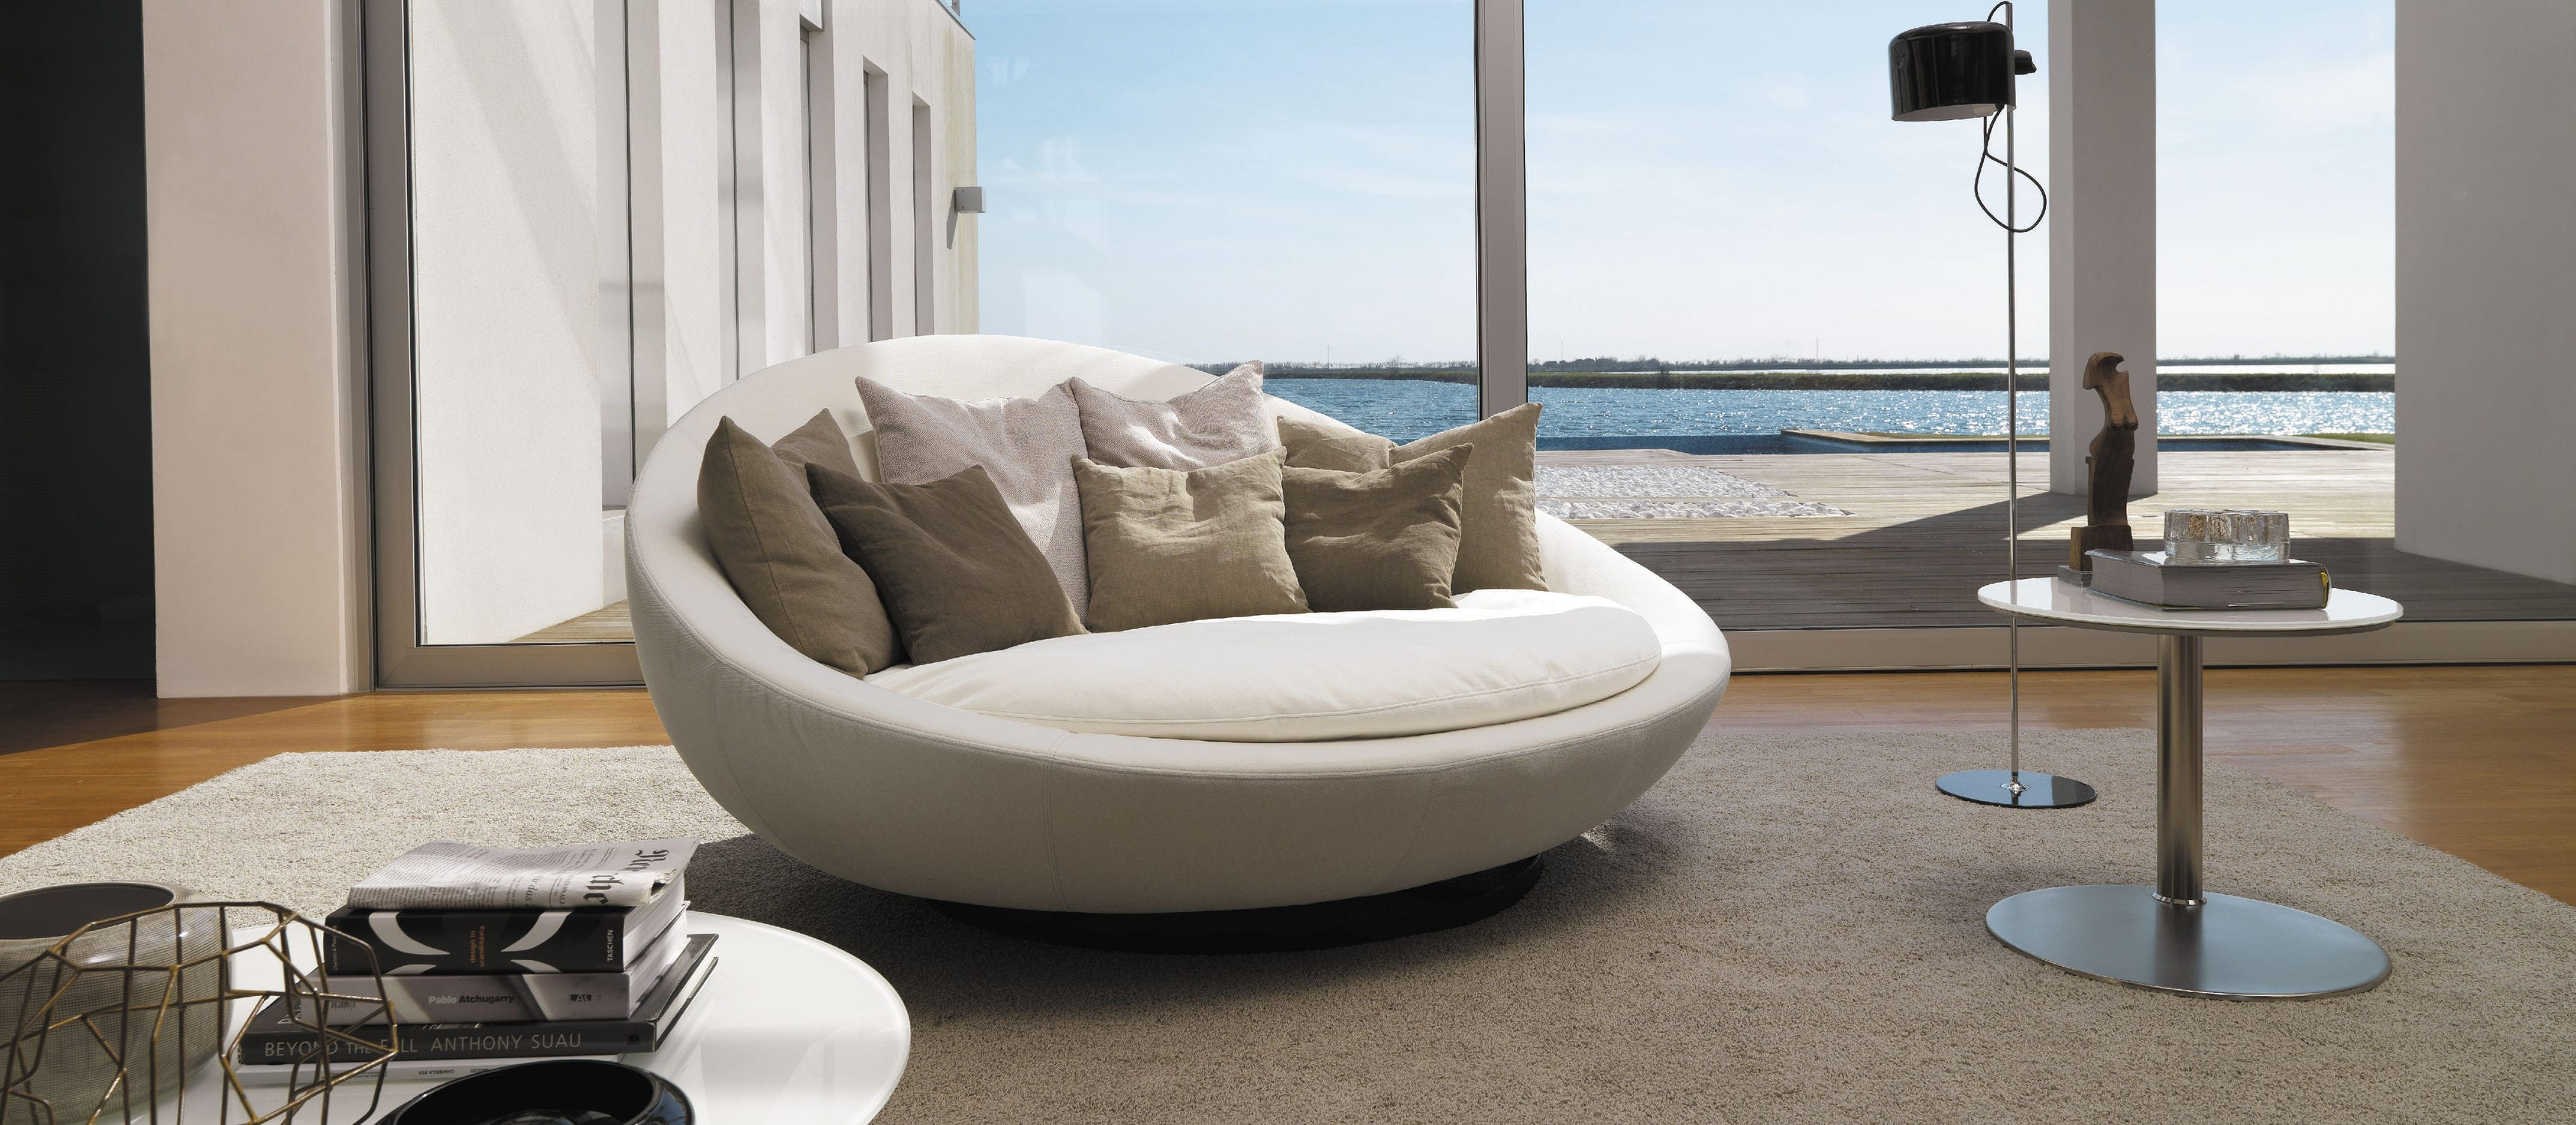 Beau Round Sofa / Contemporary / Leather / Fabric ...